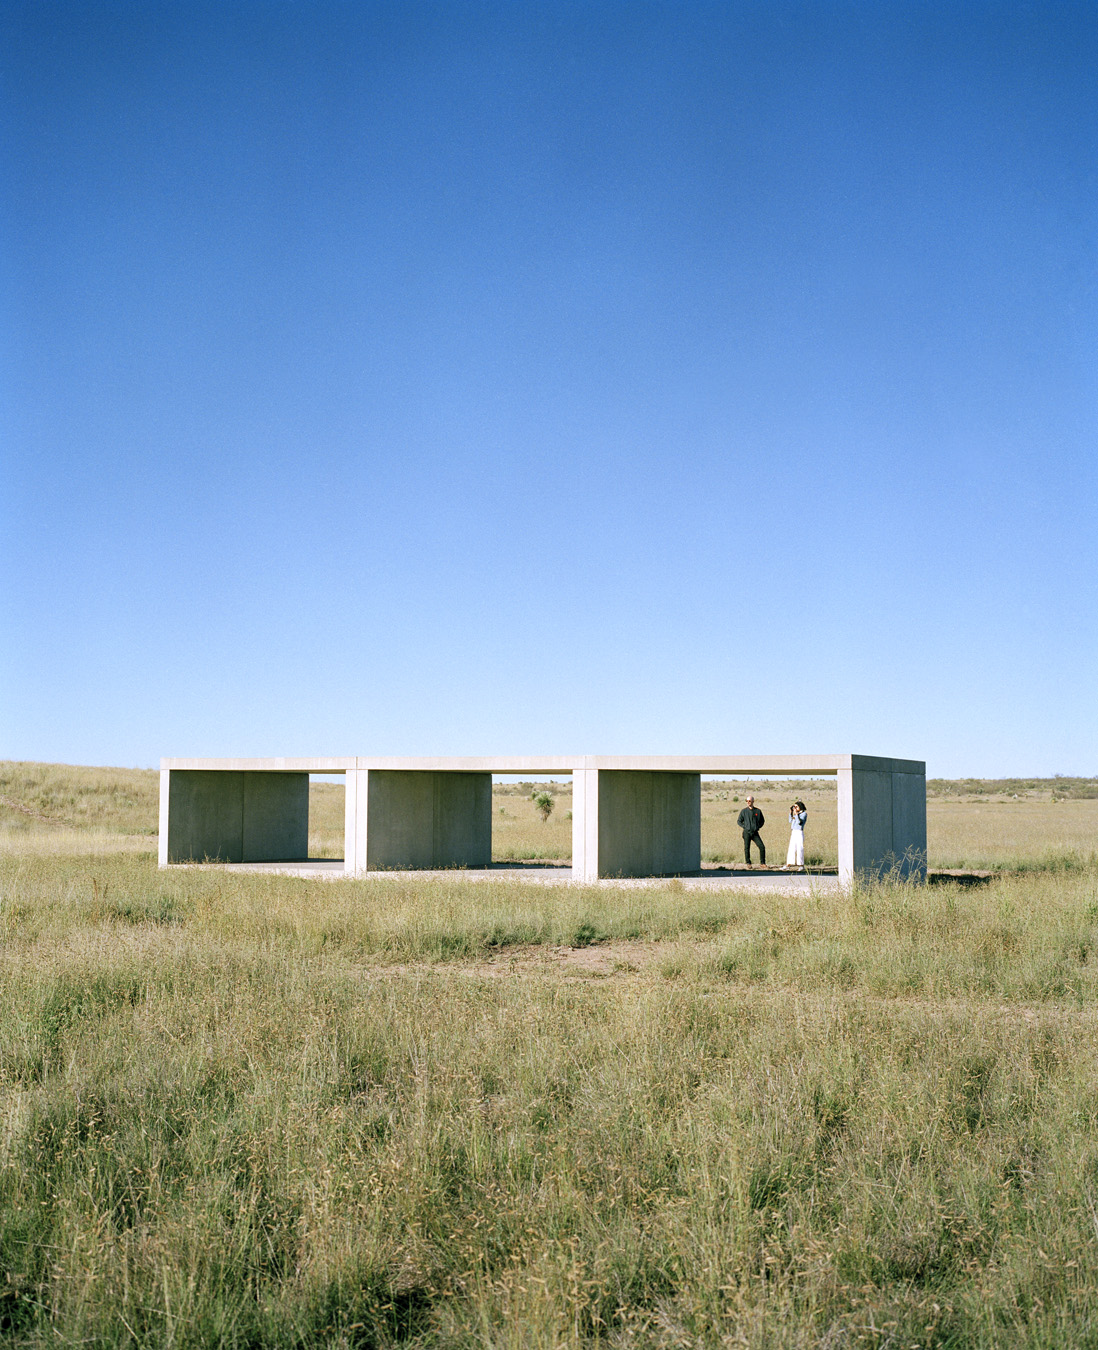 marfa-texas-travel-photographer-12.JPG